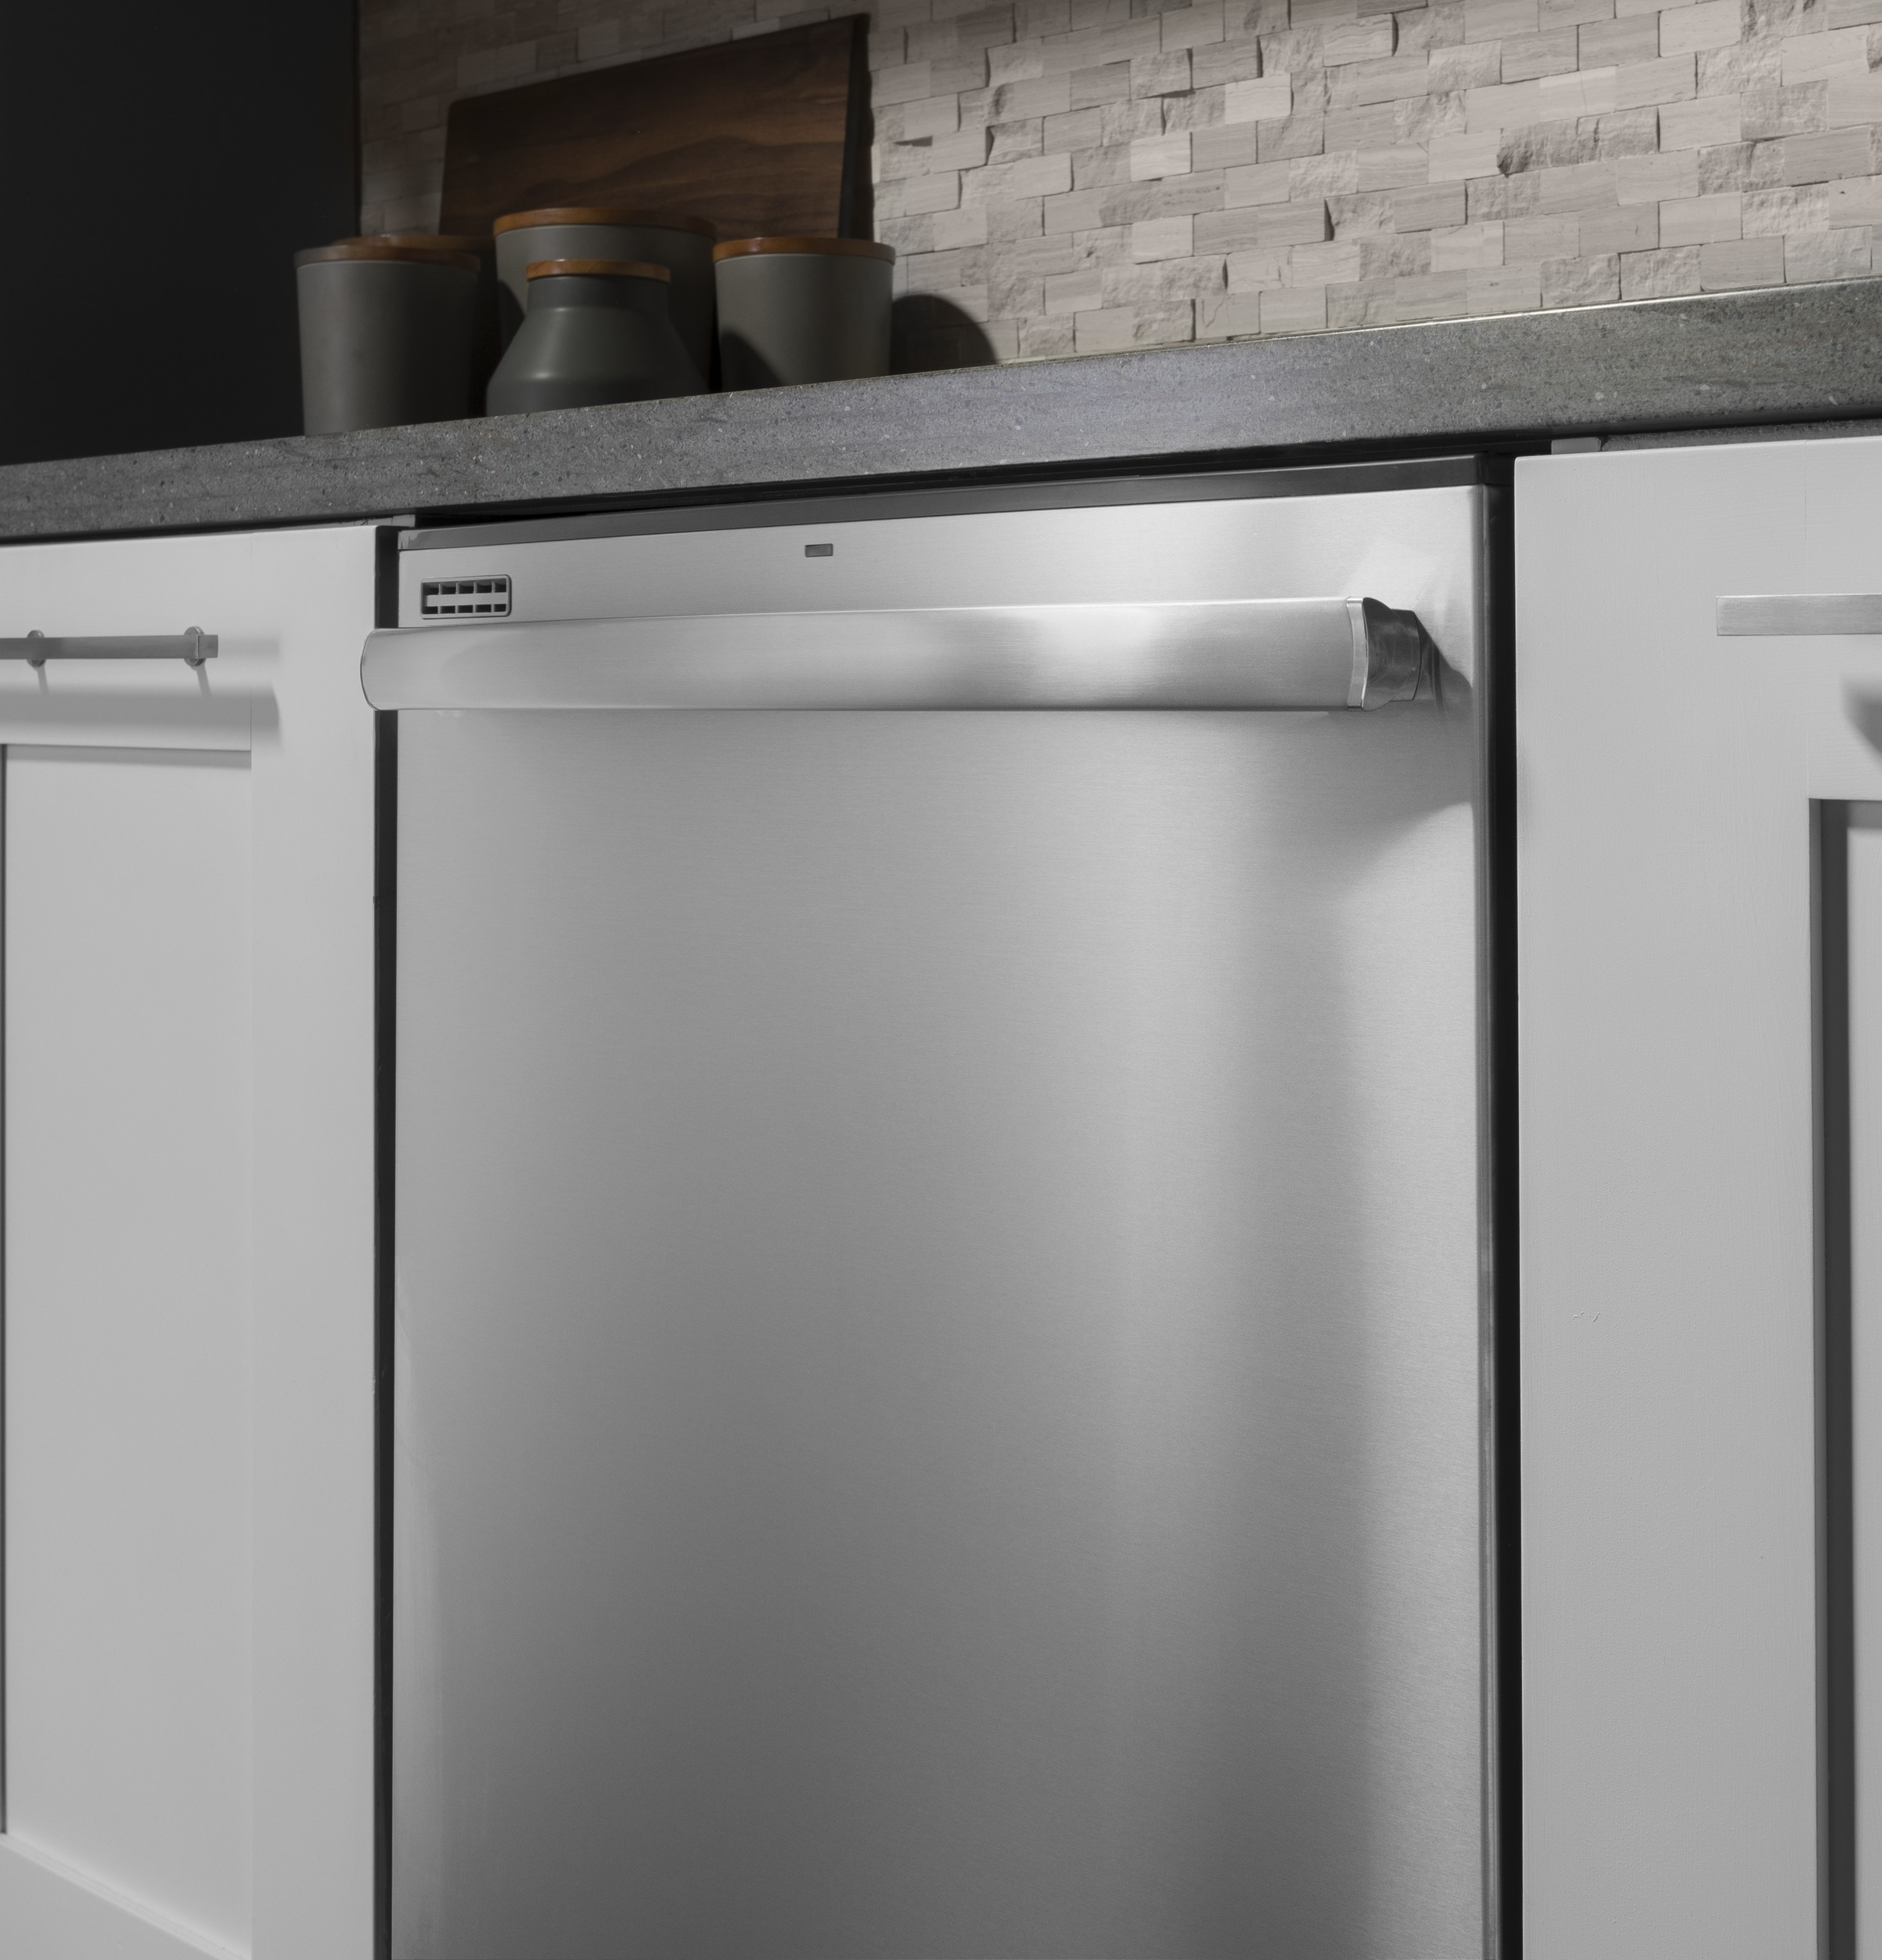 Model: GDT605PSMSS | GE® Dishwasher with Hidden Controls